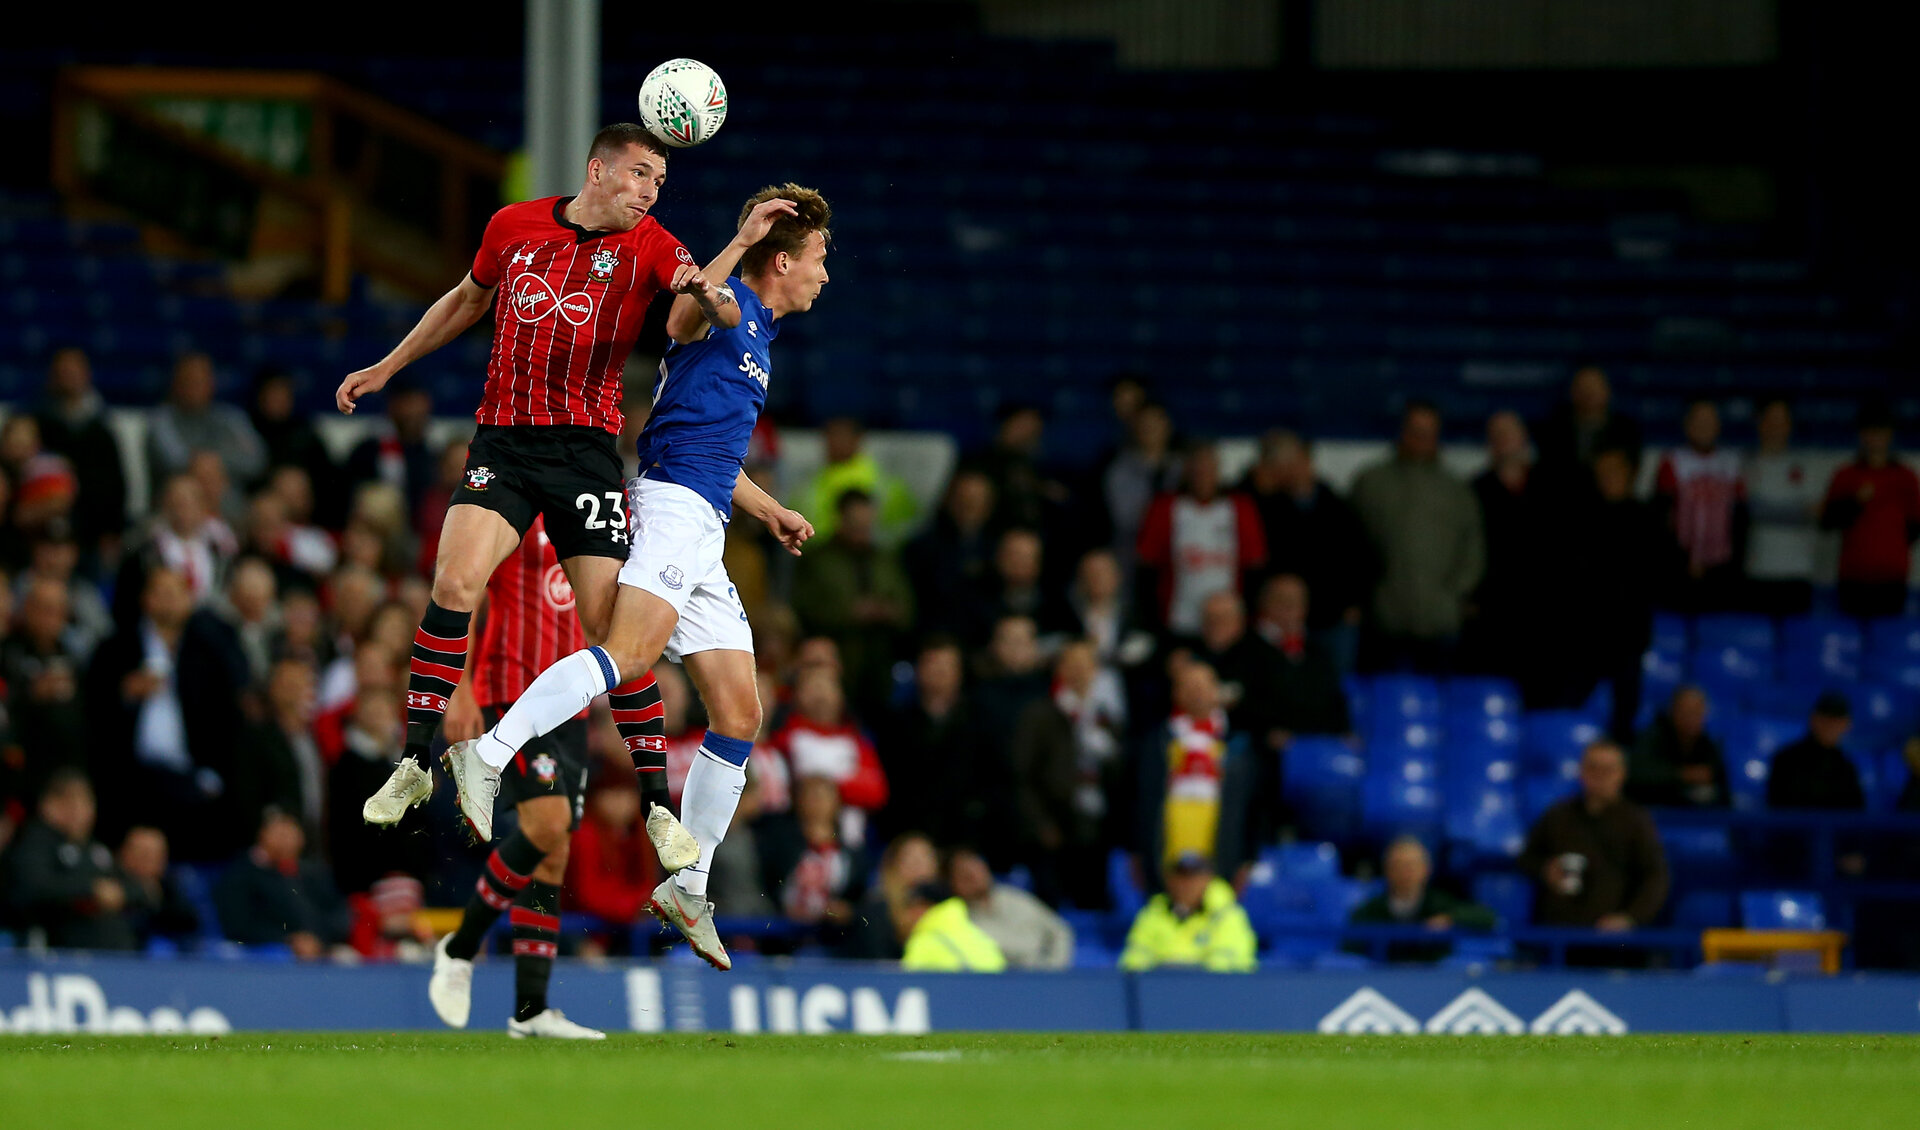 LIVERPOOL, ENGLAND - OCTOBER 02: Pierre-Emile Hojbjerg of Southampton during the Carabao Cup Third Round match between Everton and Southampton at Goodison Park on October 2nd, 2018 in Liverpool, England. (Photo by Matt Watson/Southampton FC via Getty Images)